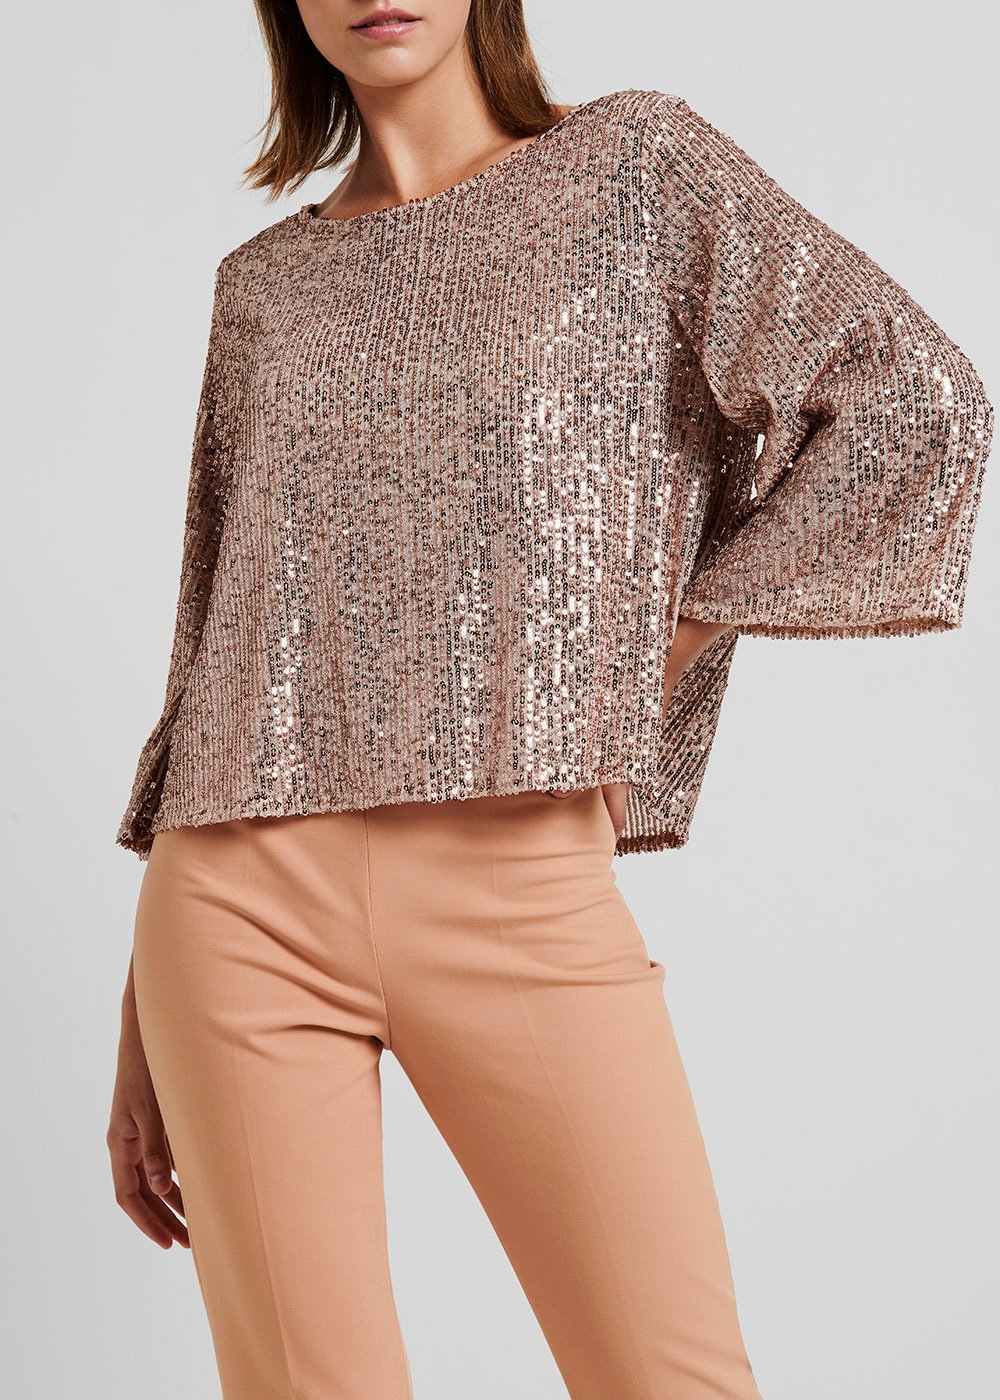 Light gold rose blouse with sequins - Rosette - Woman